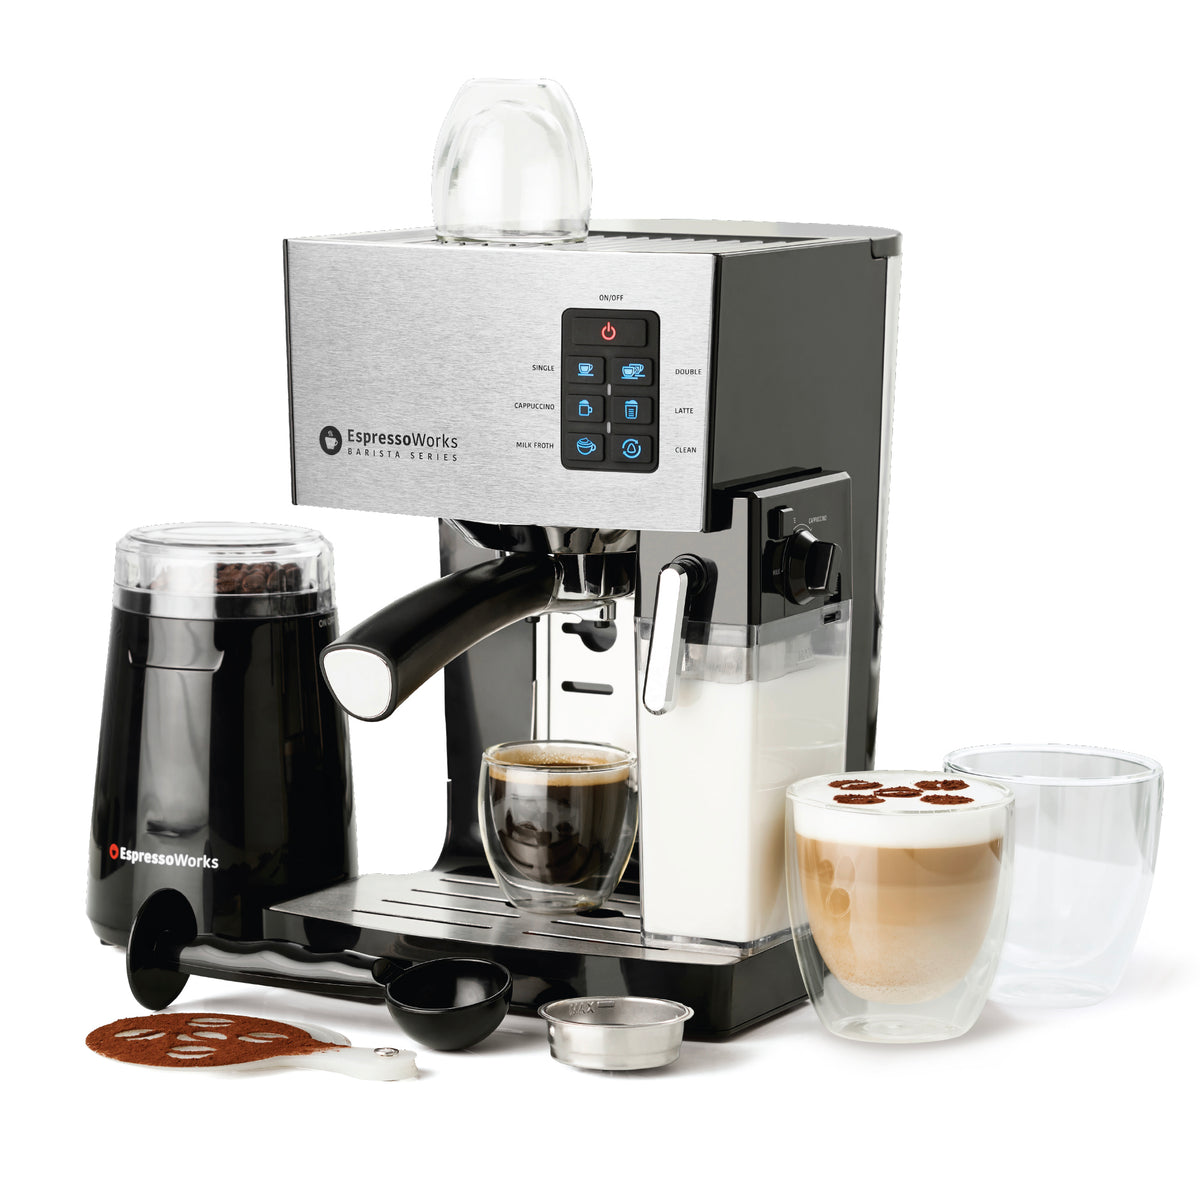 10-Piece 19-bar Espresso & Cappuccino Maker Set (Stainless Steel) making an espresso